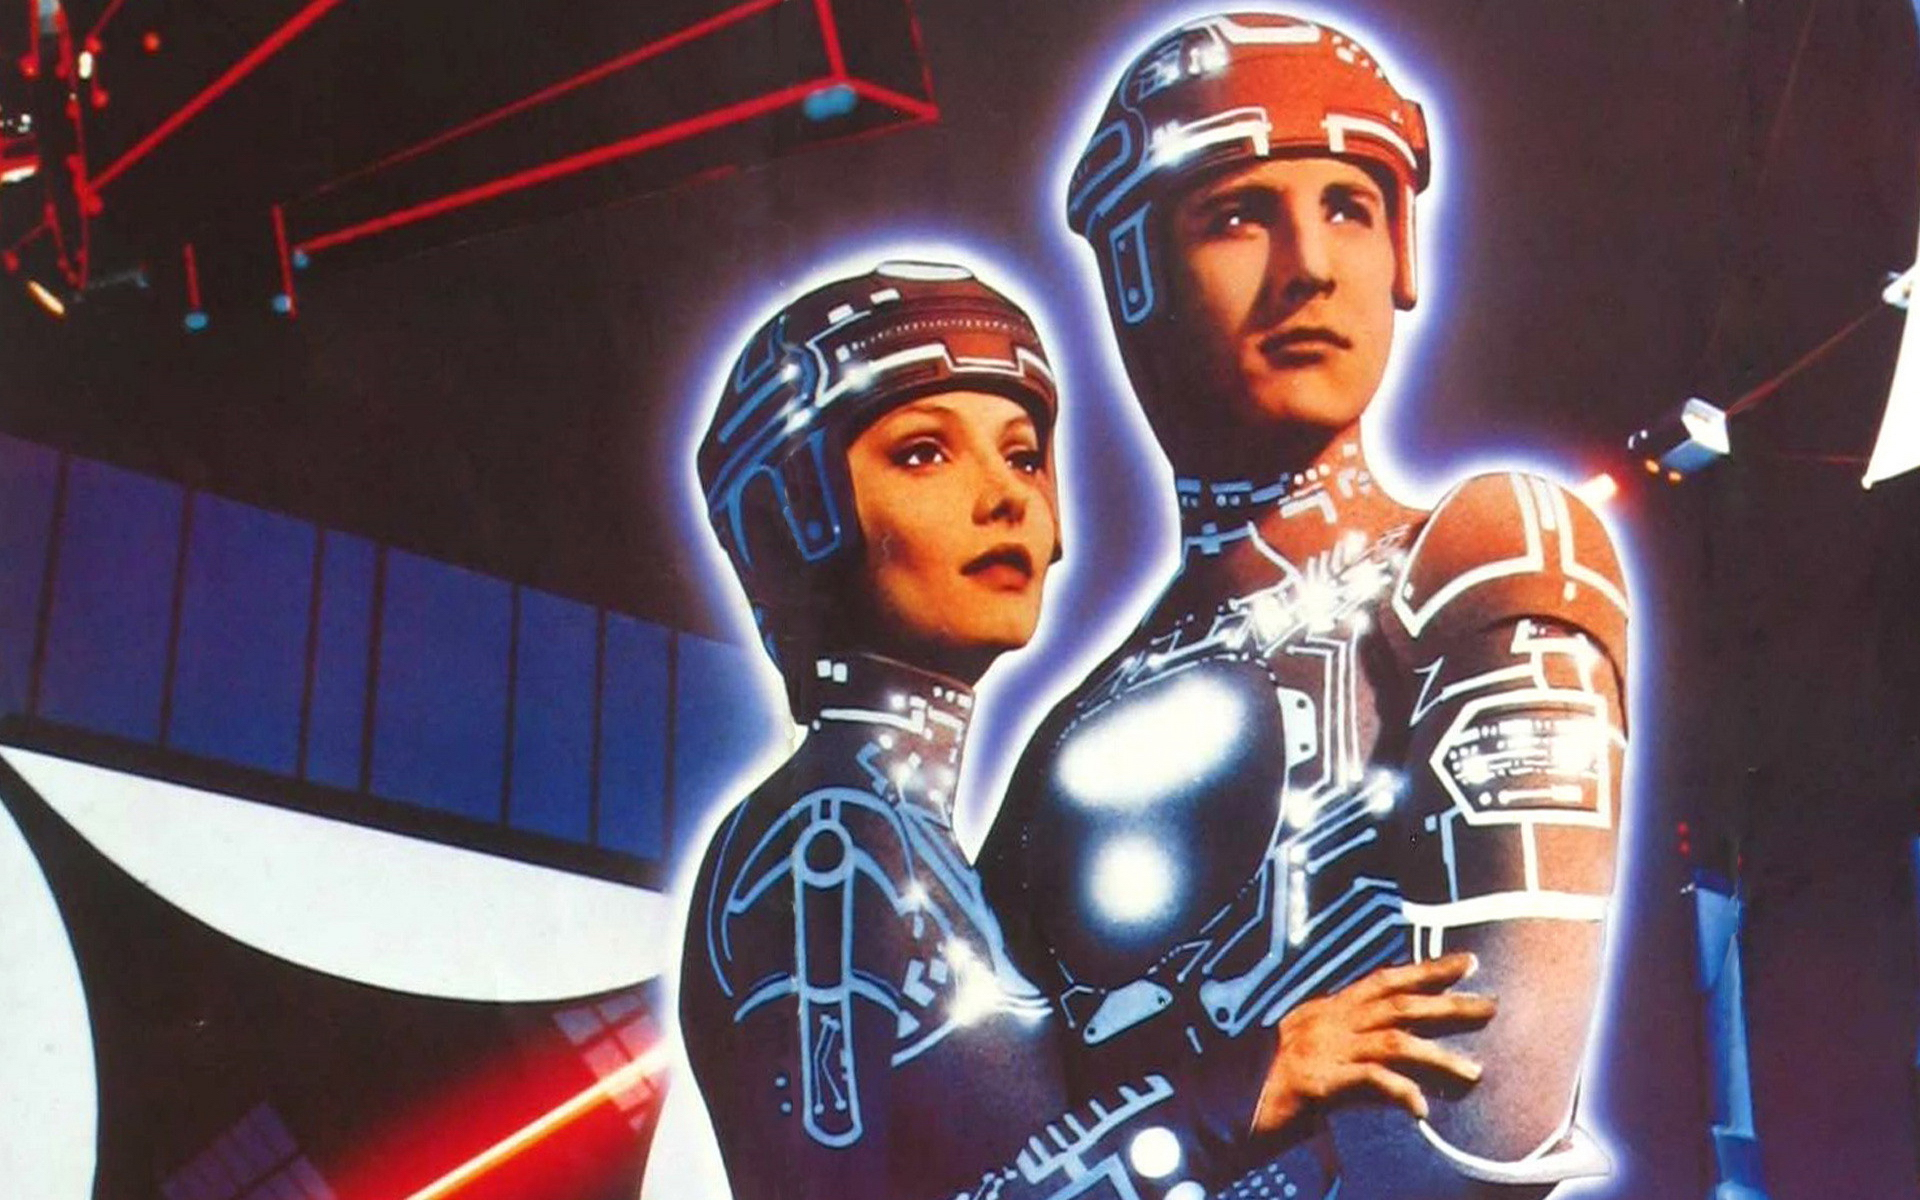 Technology related Movies - Tron